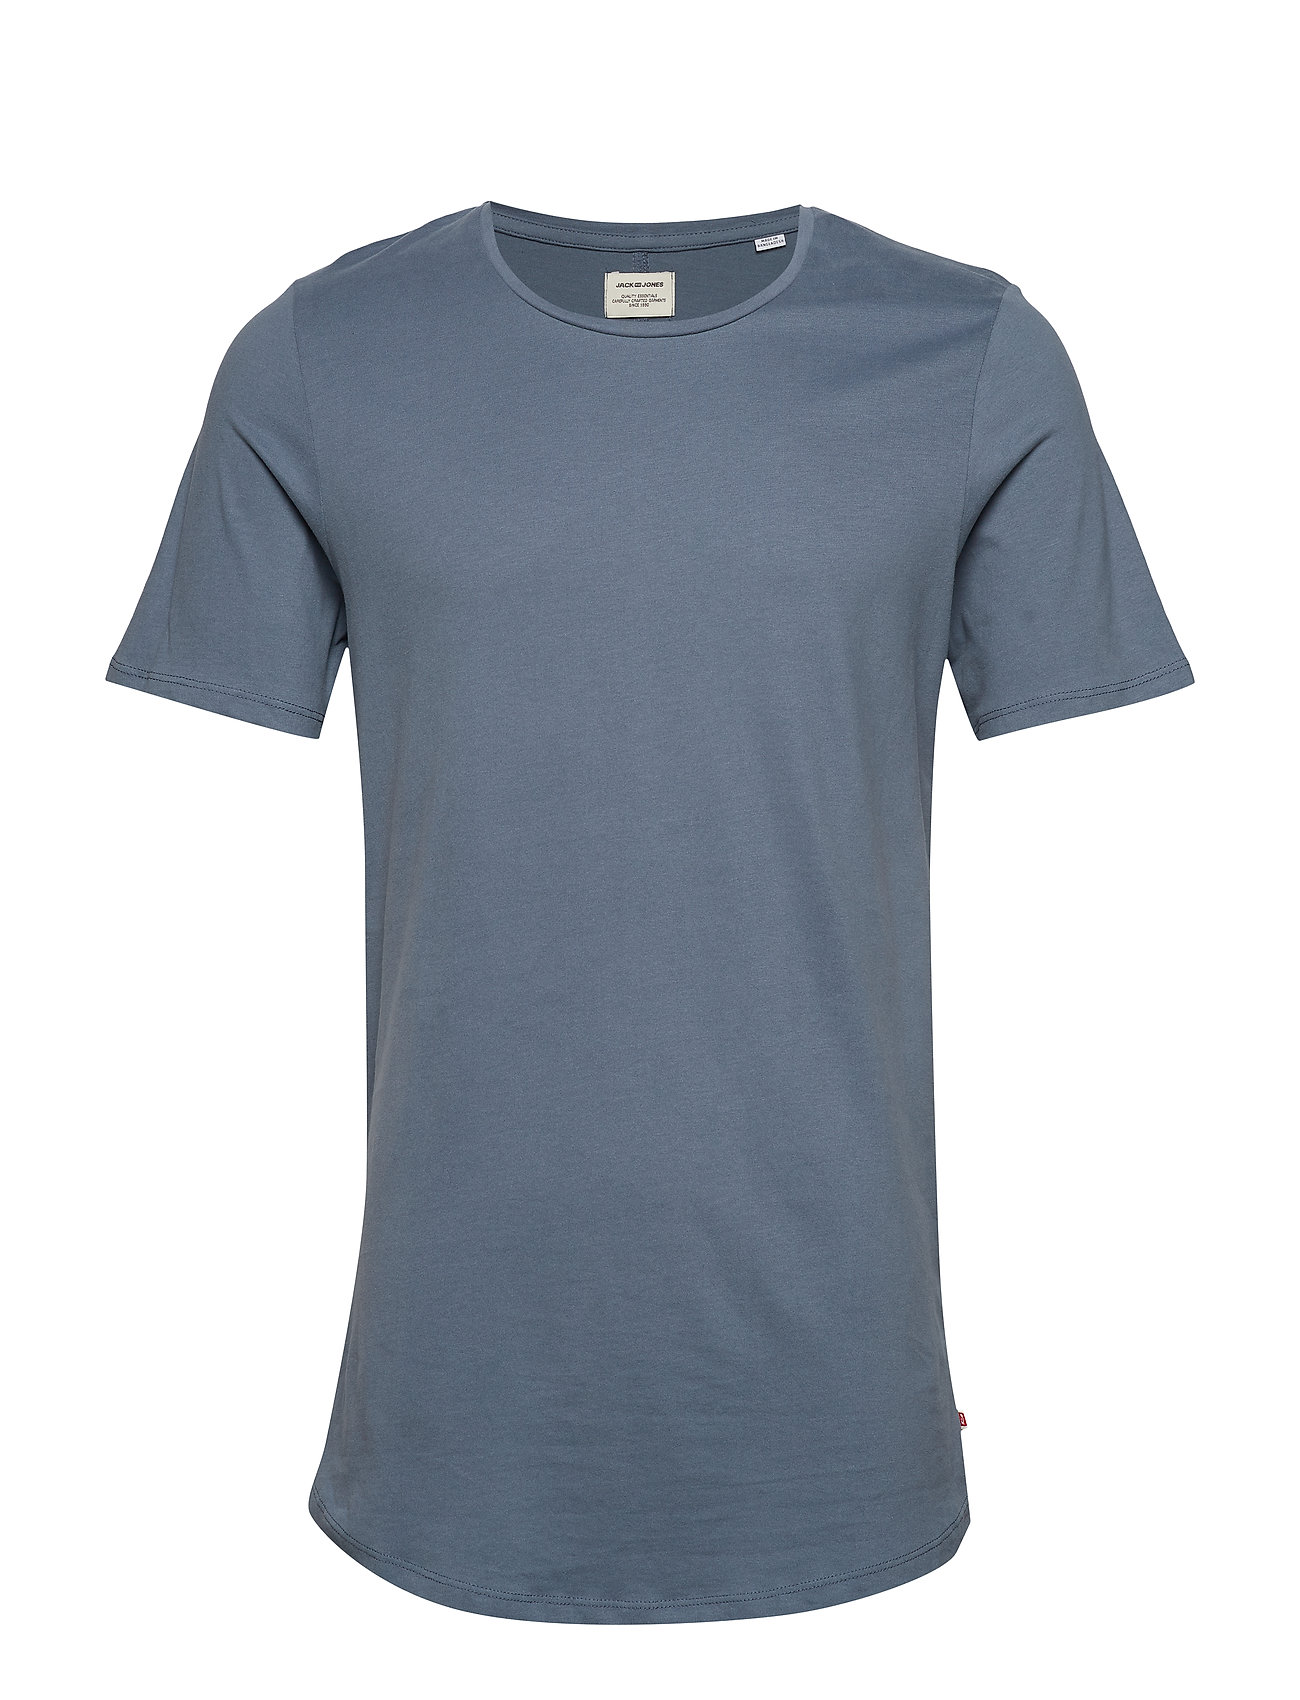 Nooschina Ss Neck Crew Jjehugo Jones Tee BlueJackamp; FJ1lcKT